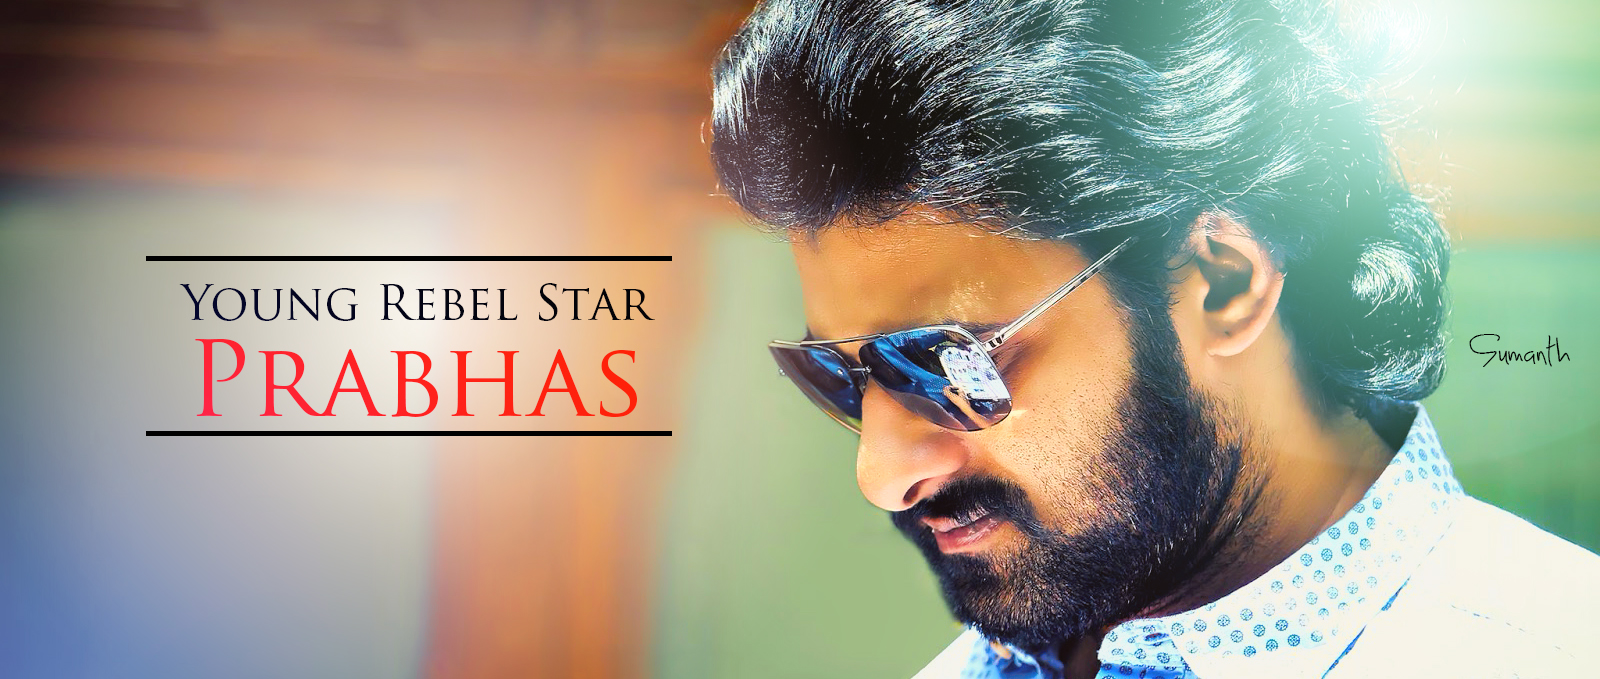 Young Rebel Star Prabhas Raju Wallpapers: Prabhas Latest Macho Look At His Home